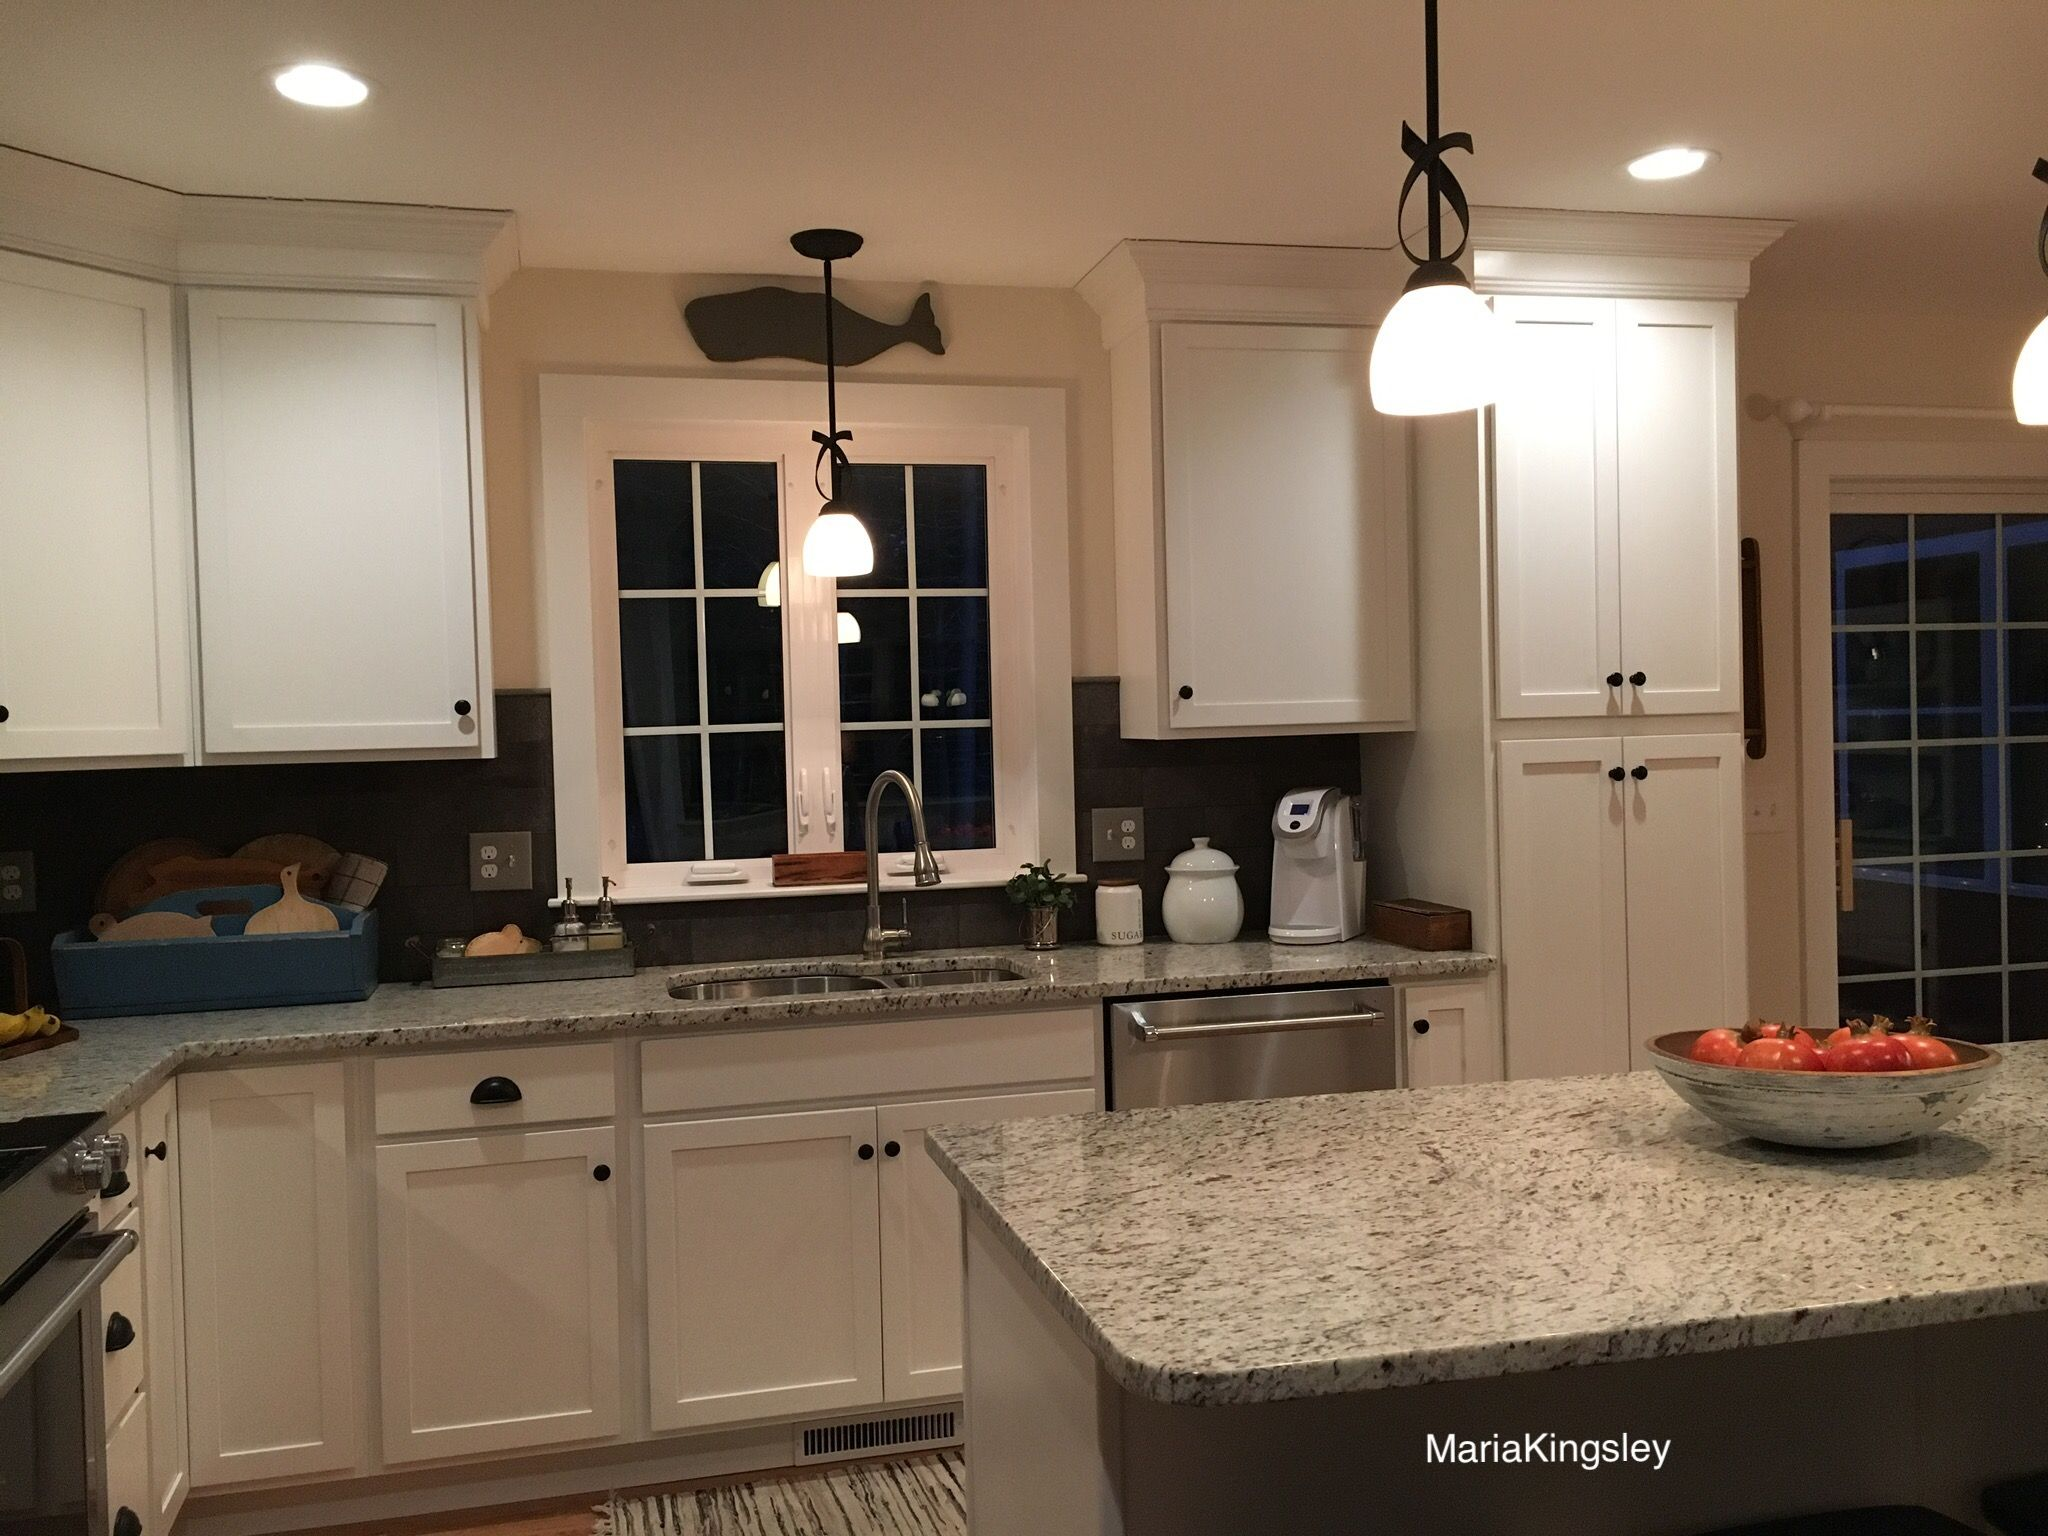 Pin by Maria Kingsley Country & Coast on Farmhouse kitchen